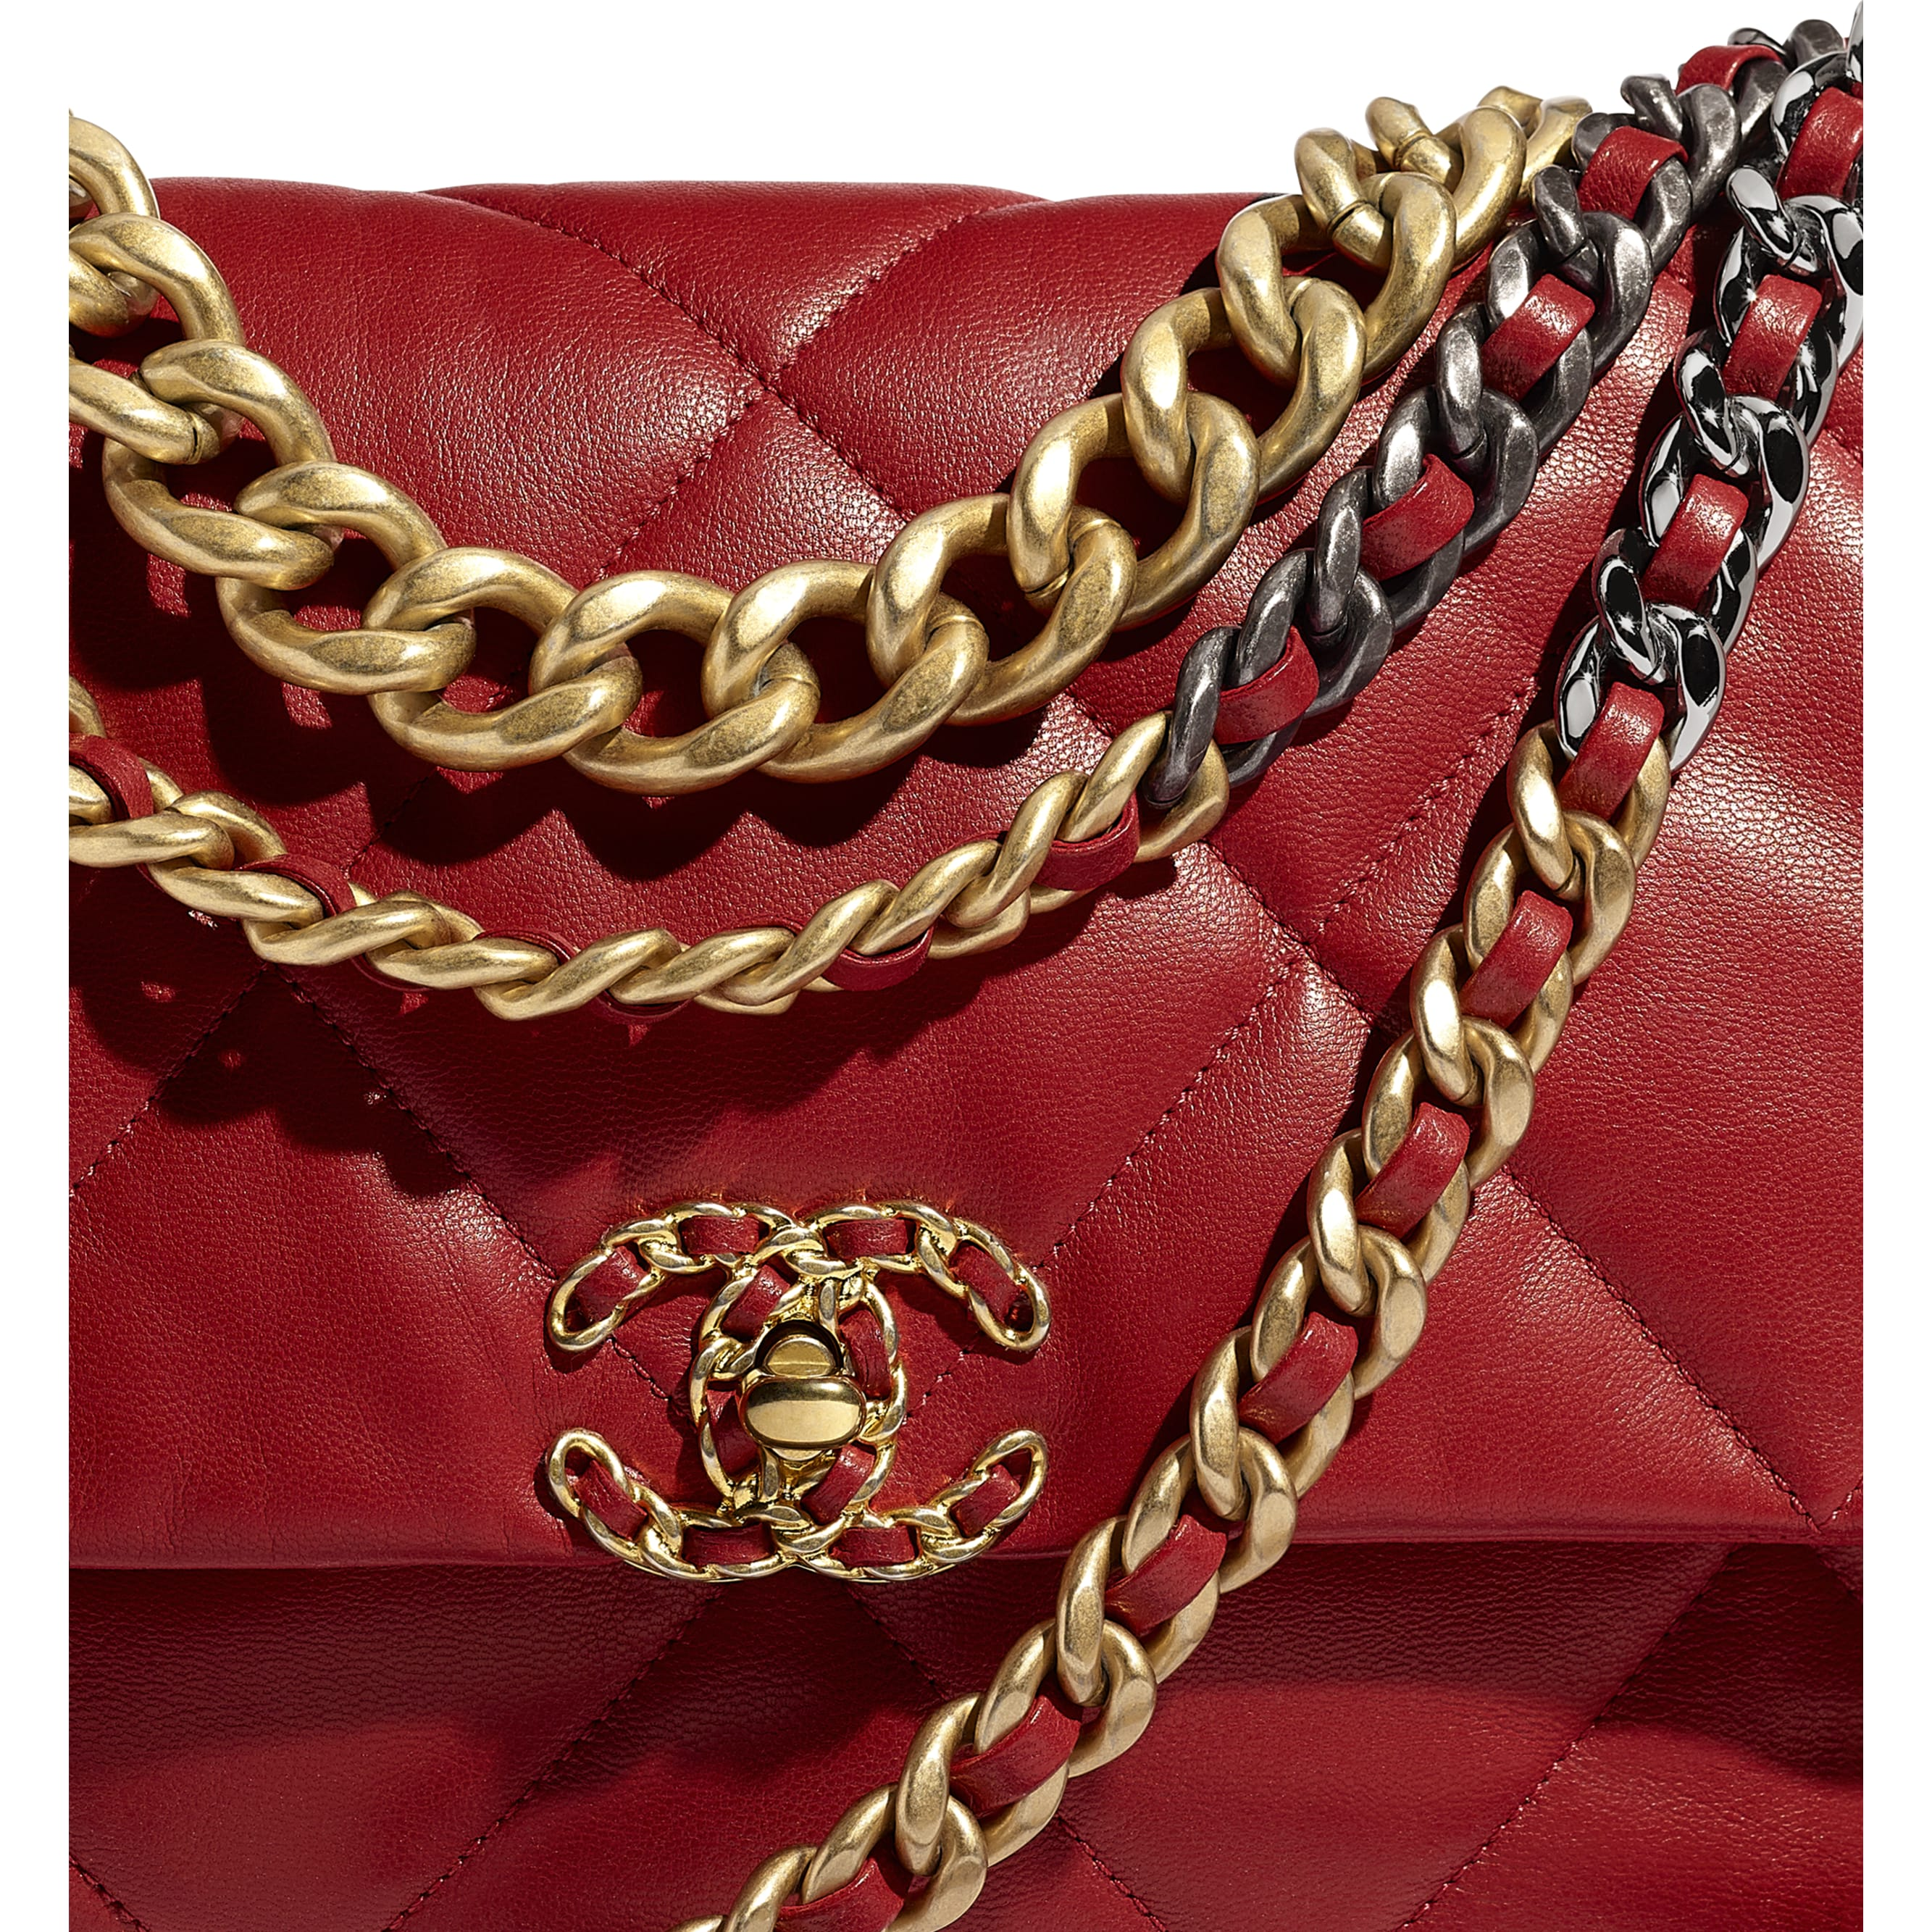 CHANEL 19 Large Flap Bag - Red - Goatskin, Gold-Tone, Silver-Tone & Ruthenium-Finish Metal - Extra view - see standard sized version